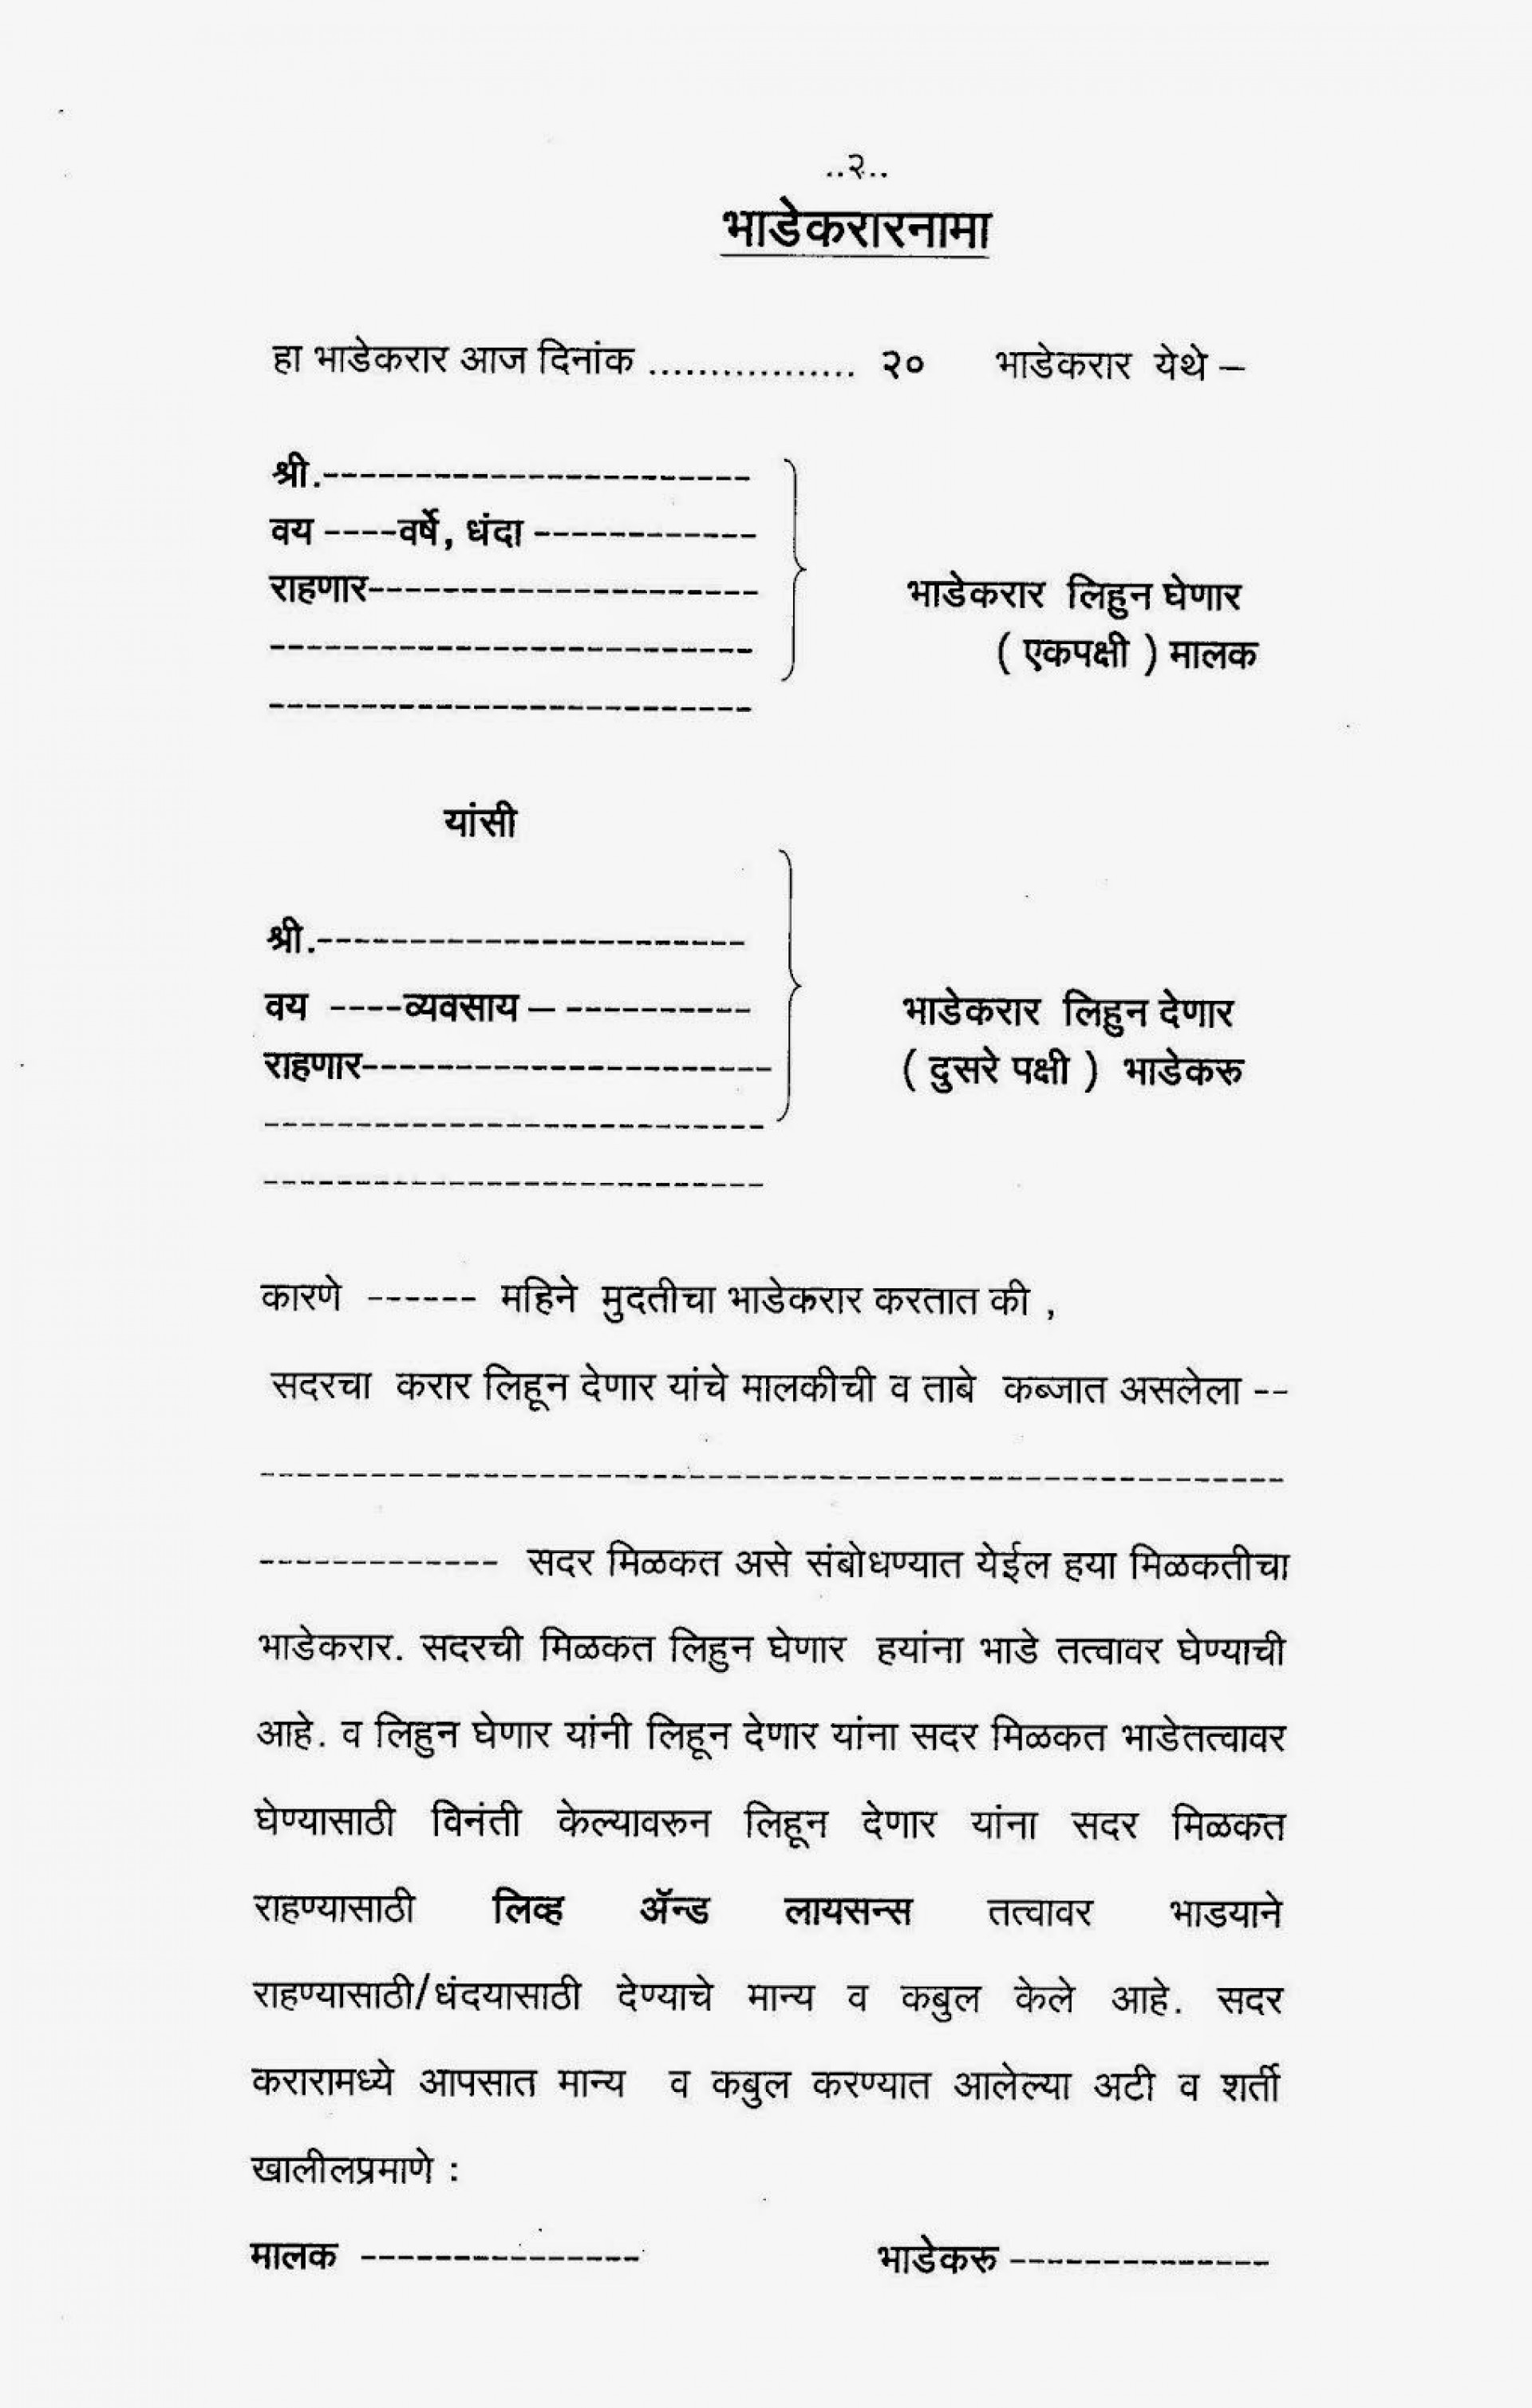 006 Fearsome Room Rent Agreement Format In Hindi Pdf Concept 1920